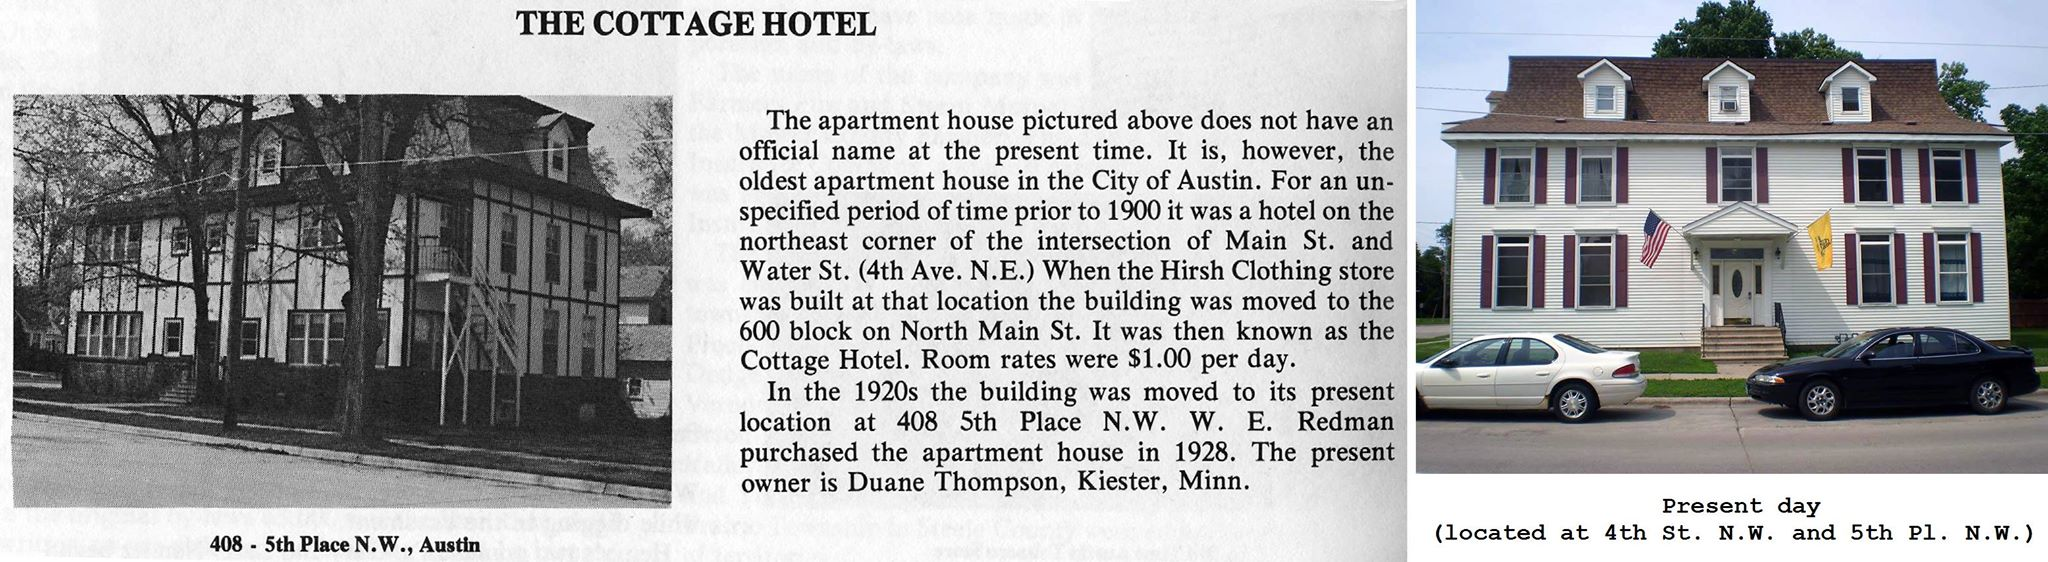 Cottage Hotel article